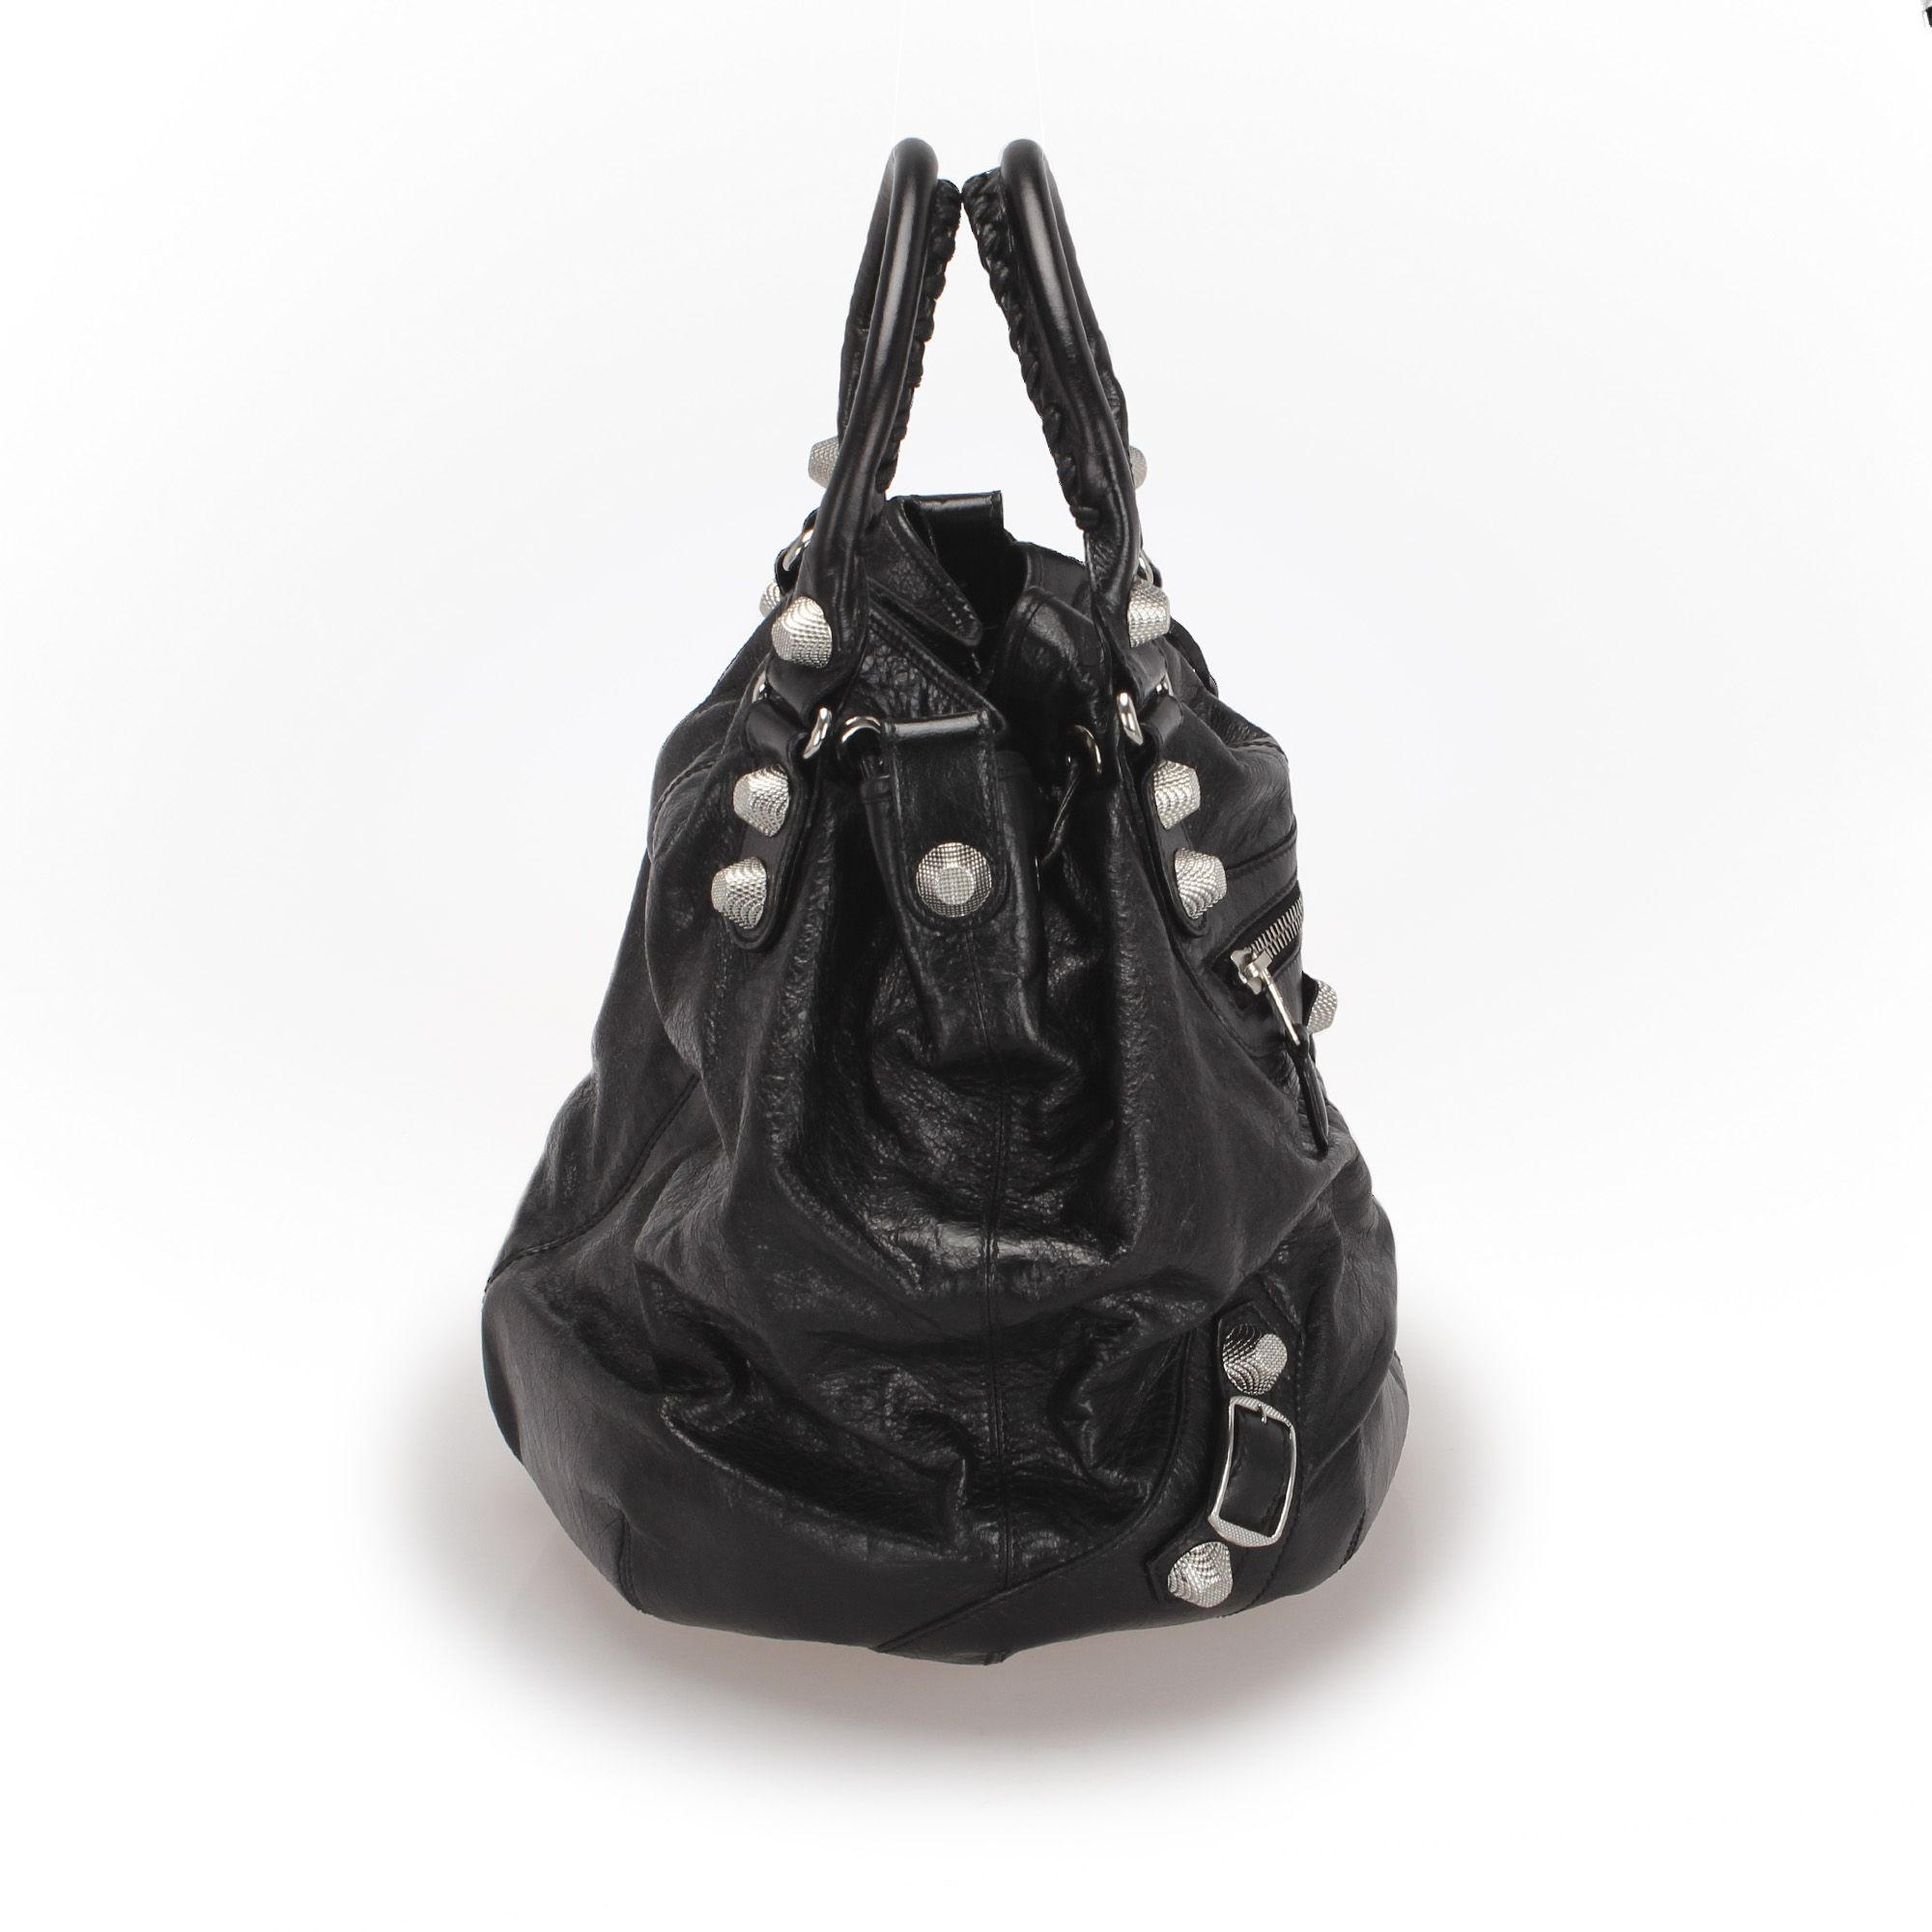 Vintage Balenciaga Motocross Giant Pompon Leather Bucket Bag Black